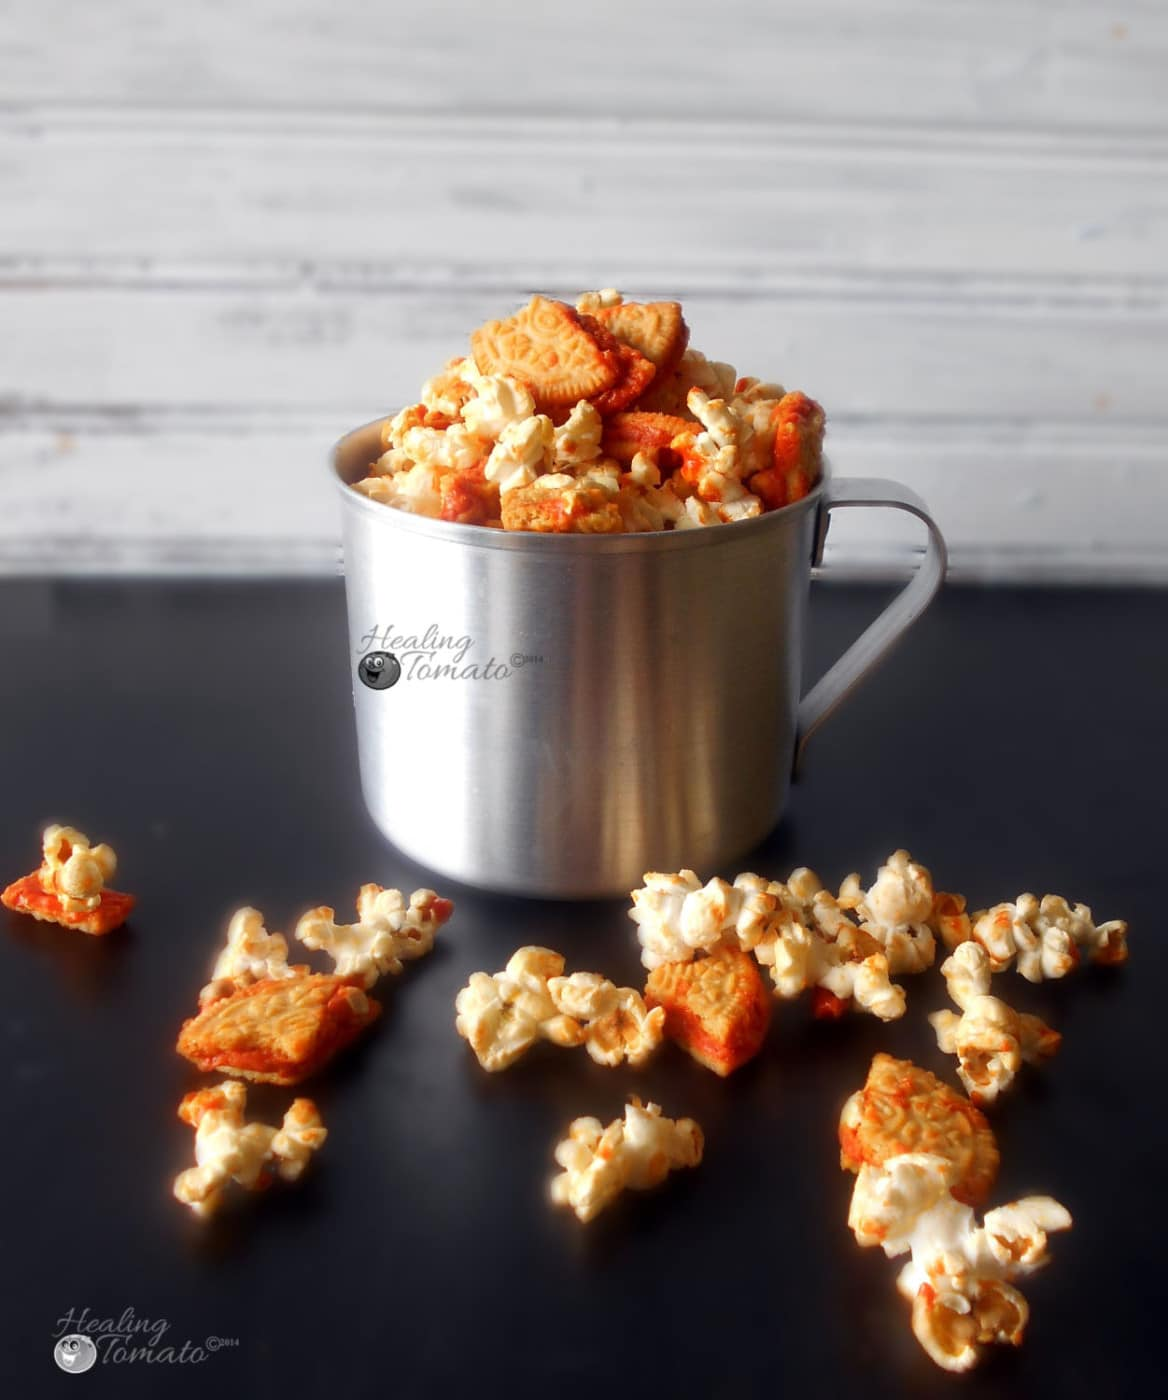 Front view of stainless steel milk container filled to the top with pumpkin spice popcorn